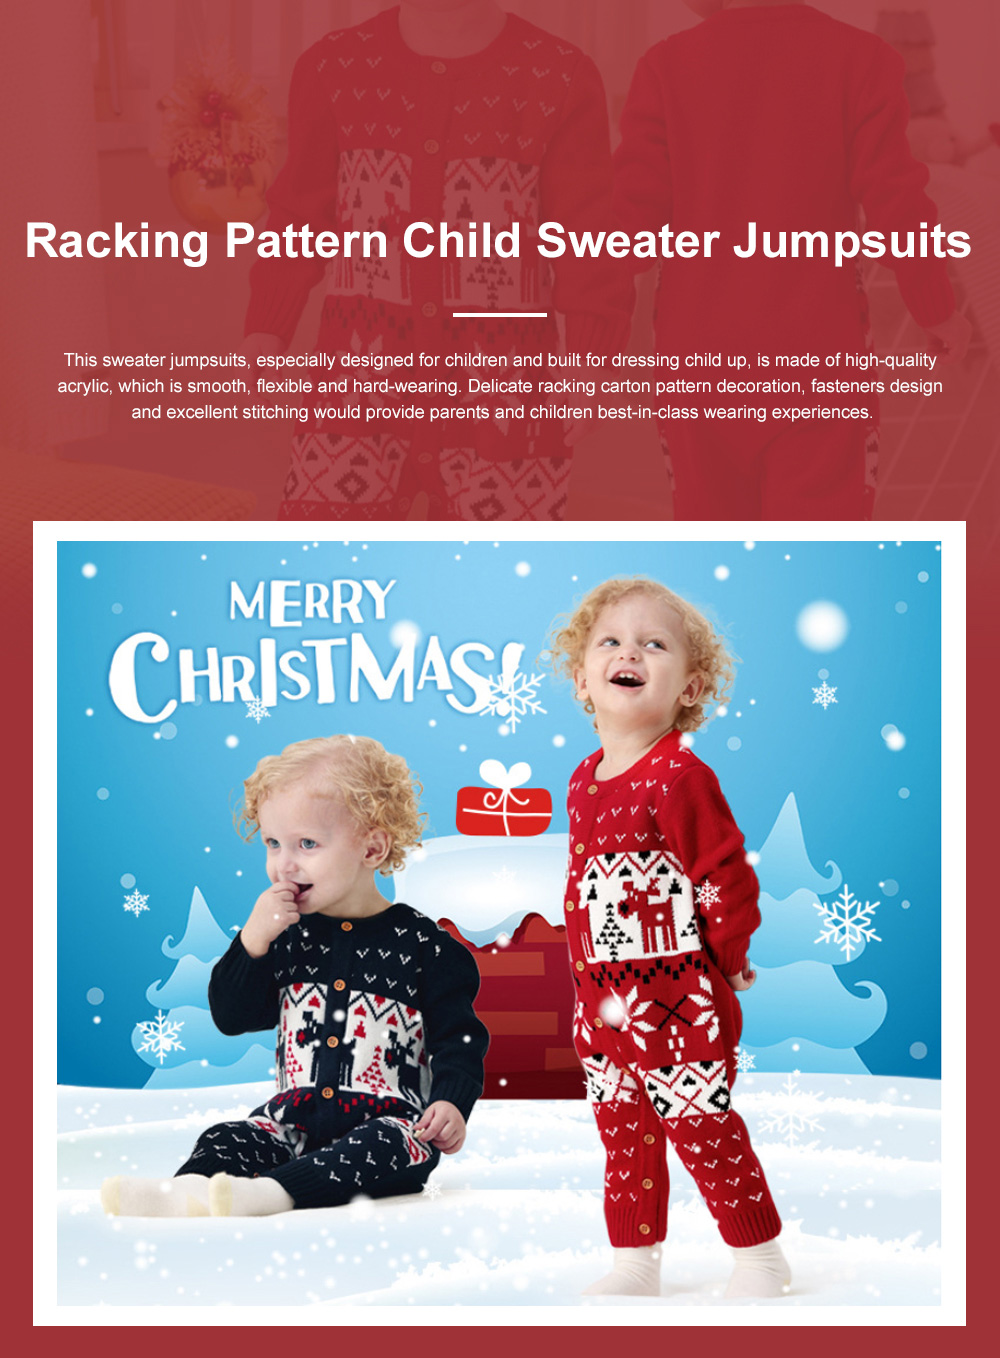 Baby Cartoon Christmas New Year Sweater One-pieces Jumpsuits for 1-3 Years Boy Girl Children Infants 0